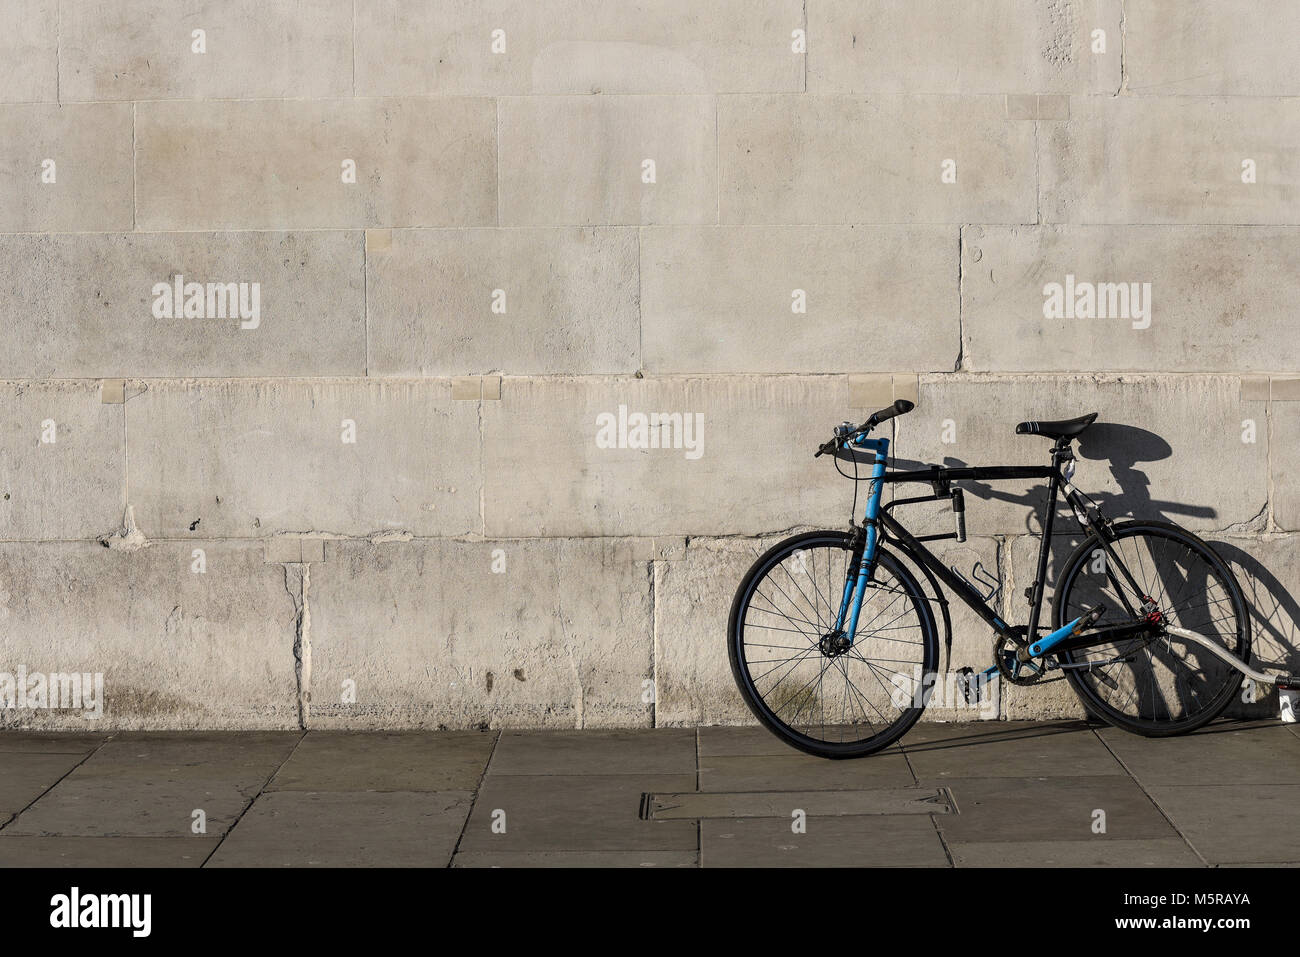 Bicycle against a blank plain wall. Large space for copy. Plain background. Cycle. Bike. Sunny day - Stock Image